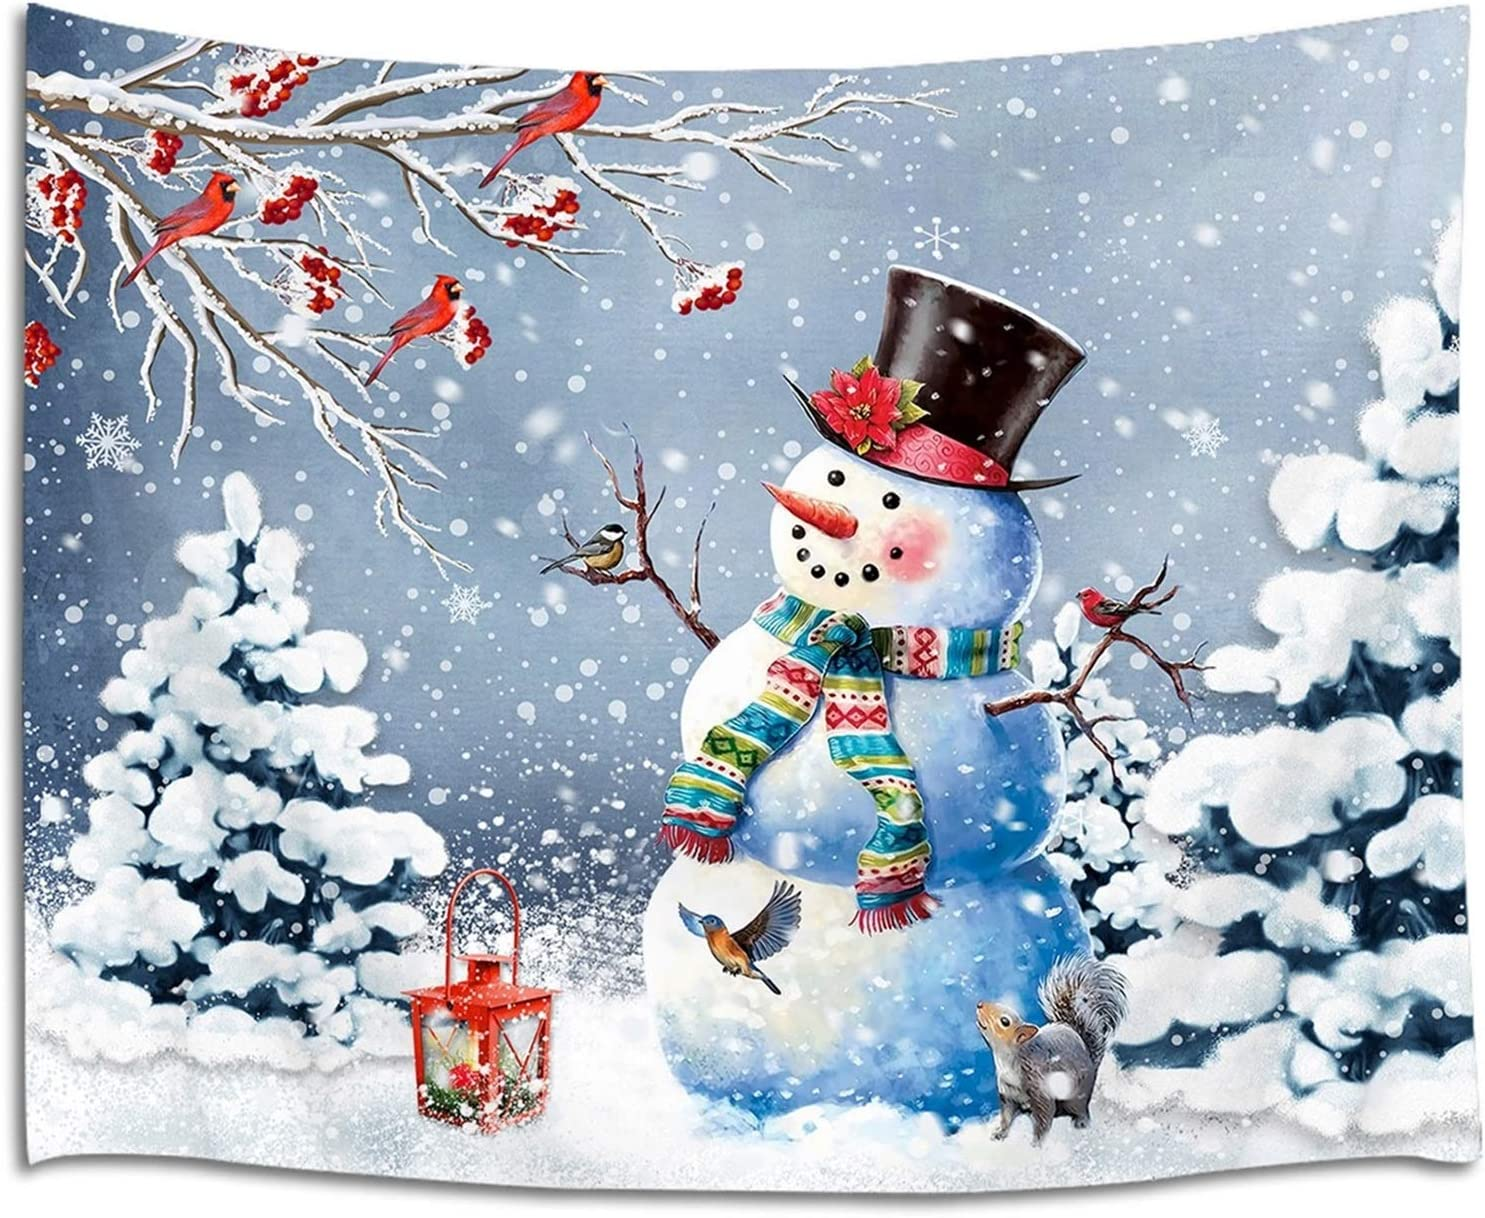 LB Christmas Snowman Tapestry Xmas Tree Winter Snow Scenery Tapestry Wall Hanging Outdoor Bird Cardinals Squirrel Snowflake Tapestry for Bedroom Living Room Dorm Decorations Wall Art Decor 60x40 inch